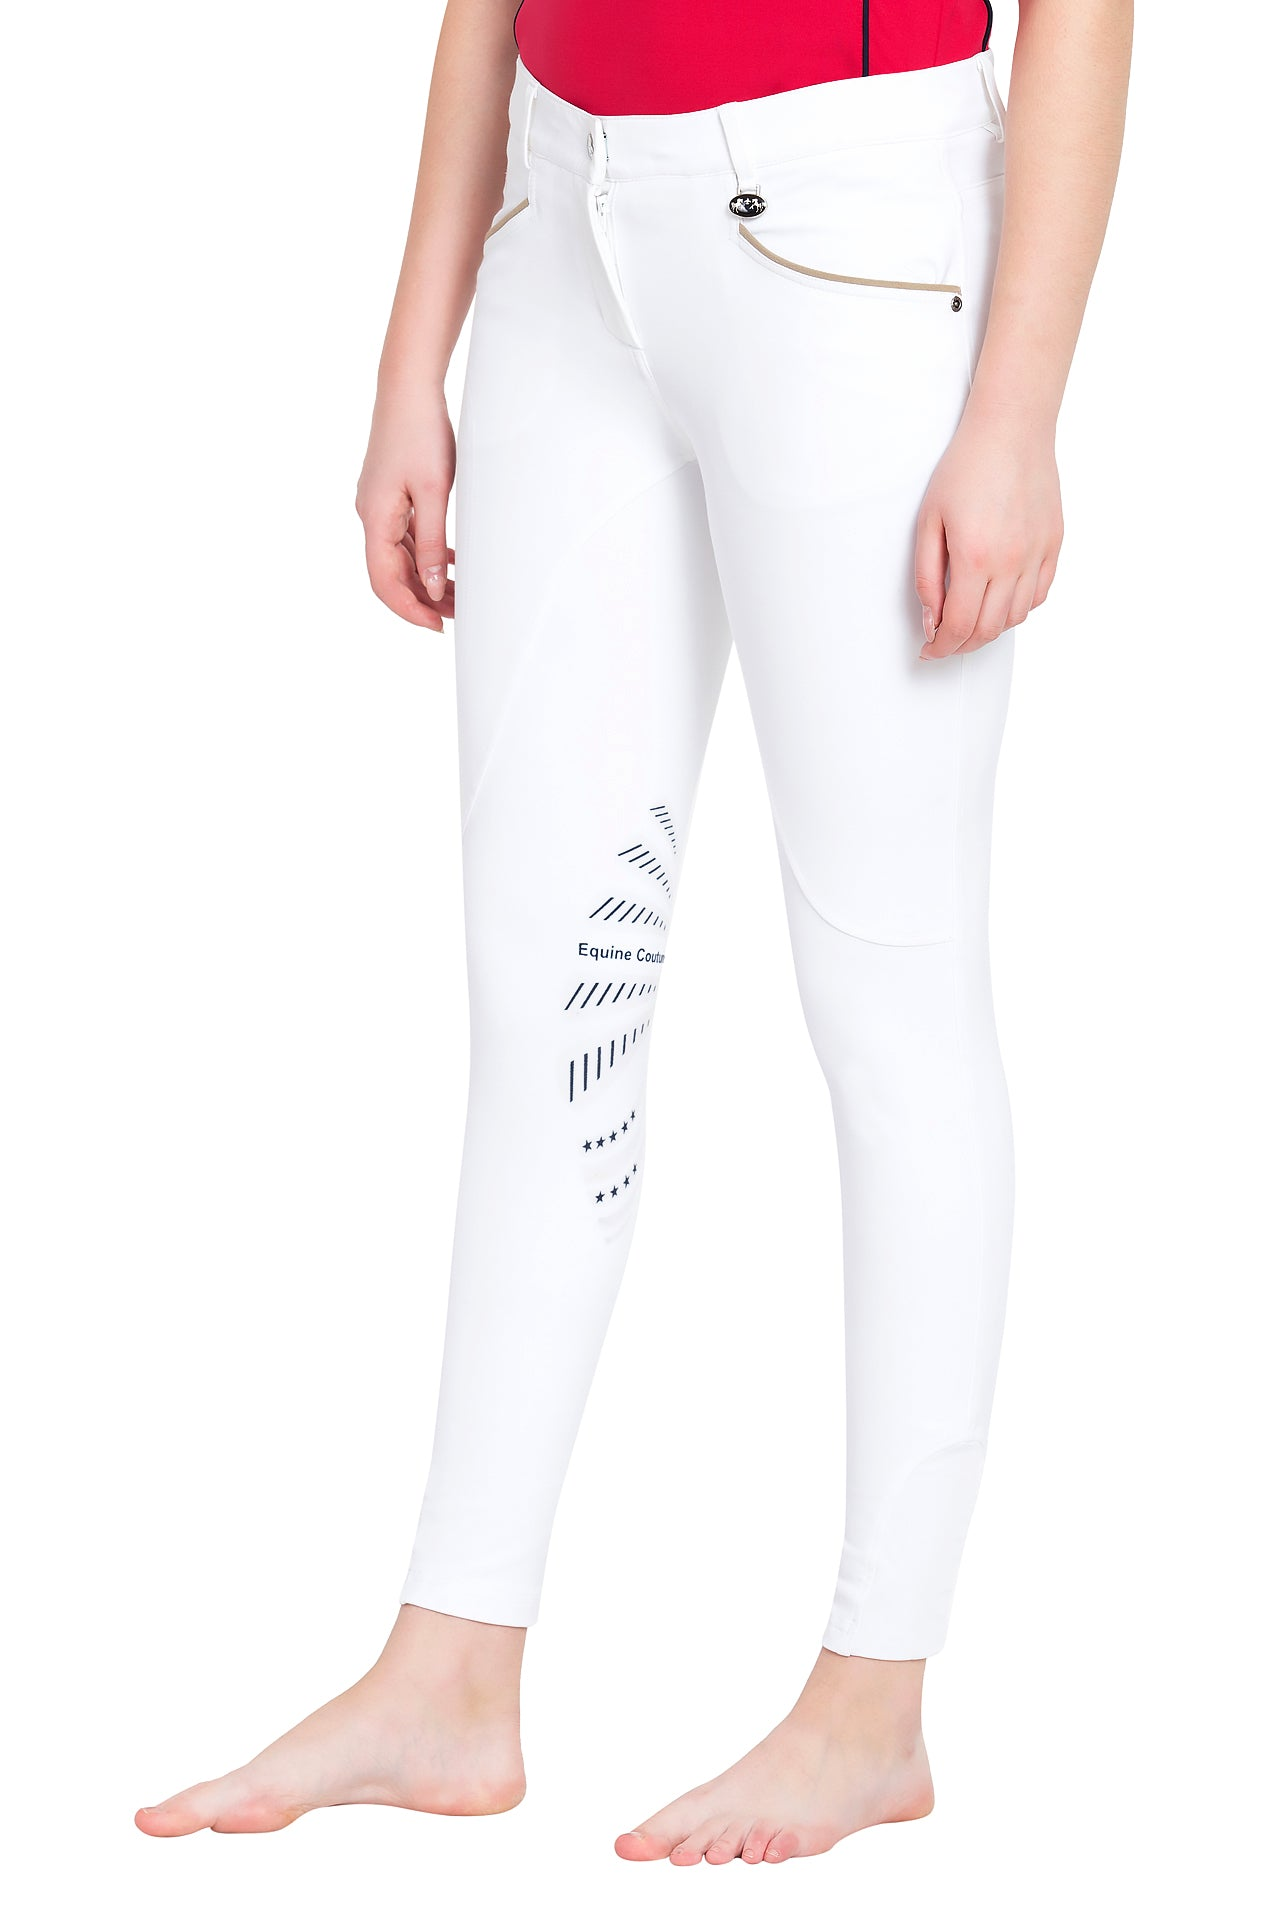 Equine Couture Ladies Lille Knee Patch Breeches_138